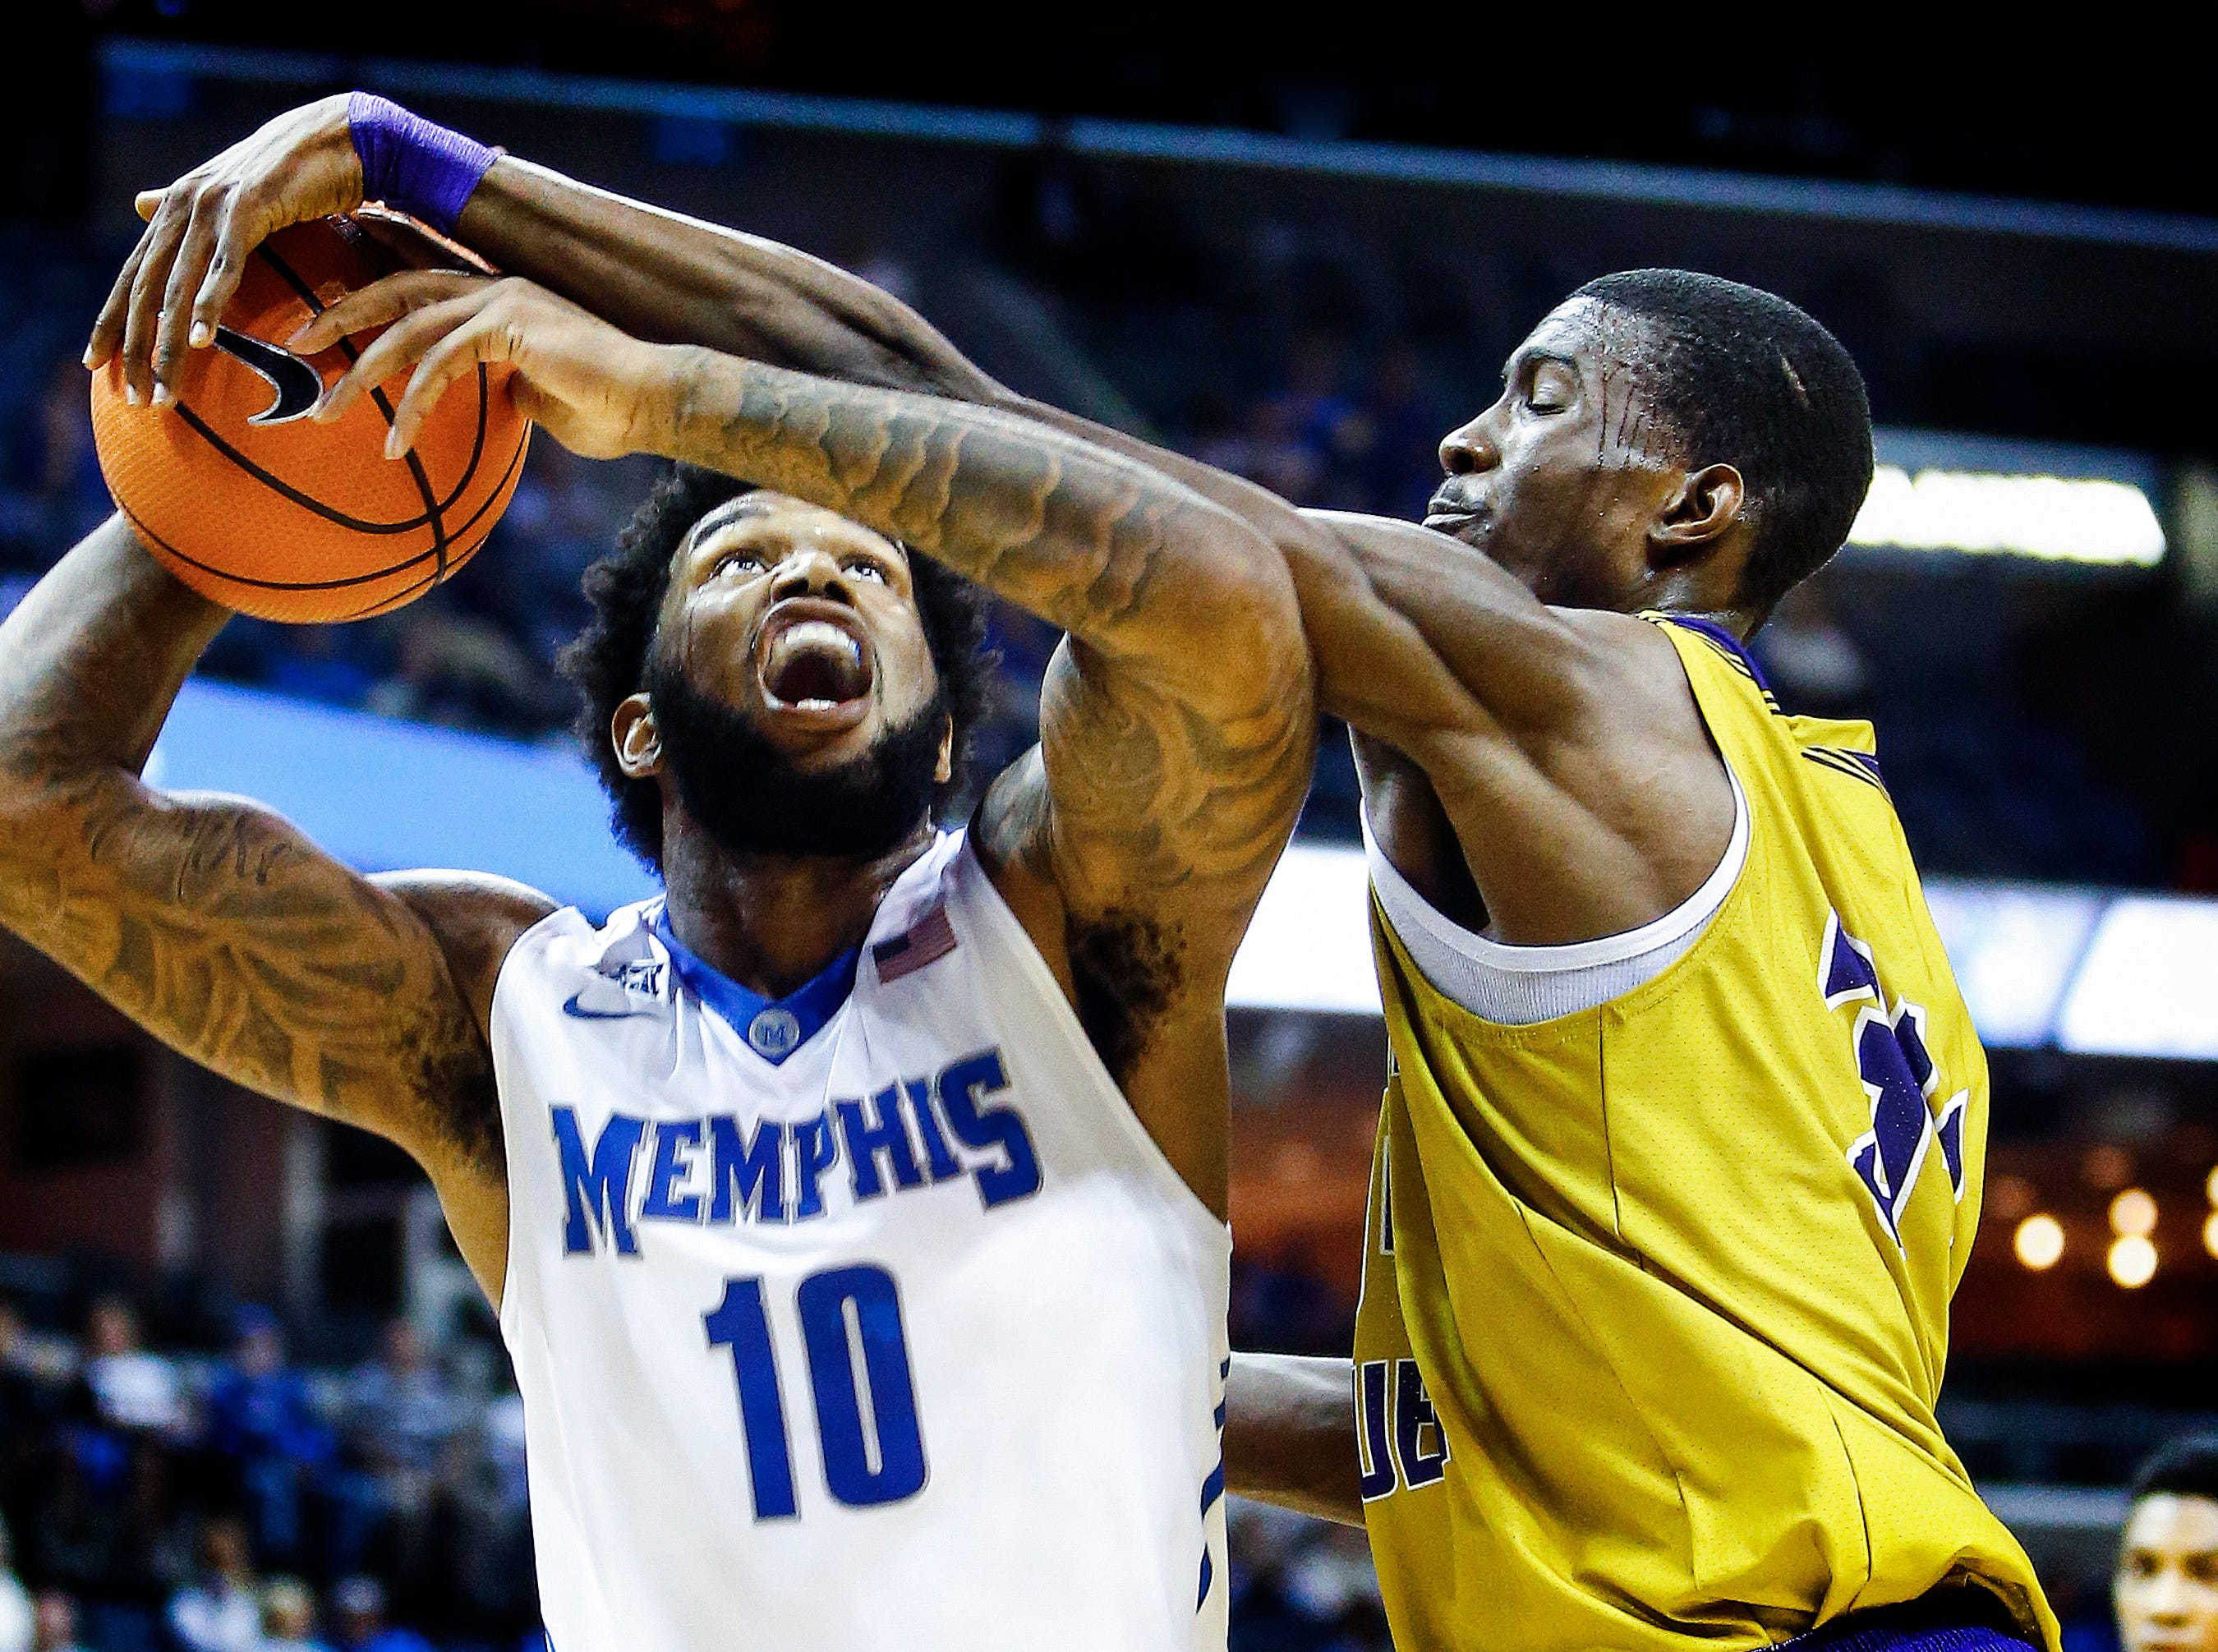 University of Memphis forward Mike Parks Jr. (left) is fouled by LeMoyne-Owen defender Kemar Campbell (right) during first half action at the FedExForum in Memphis, Tenn., Thursday, November 2, 2017.